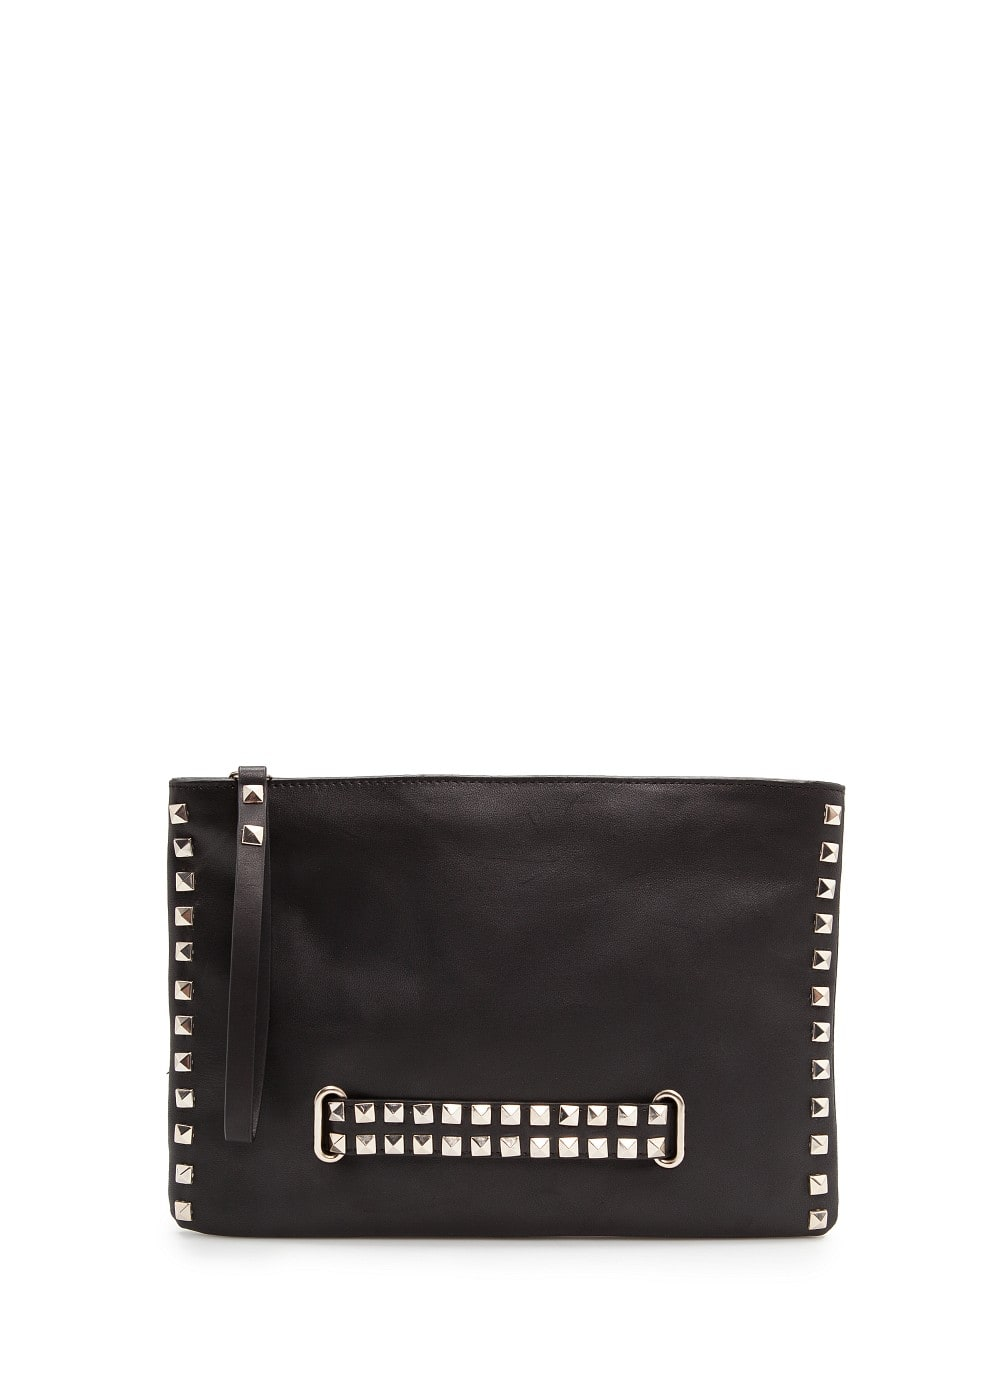 Studded leather clutch